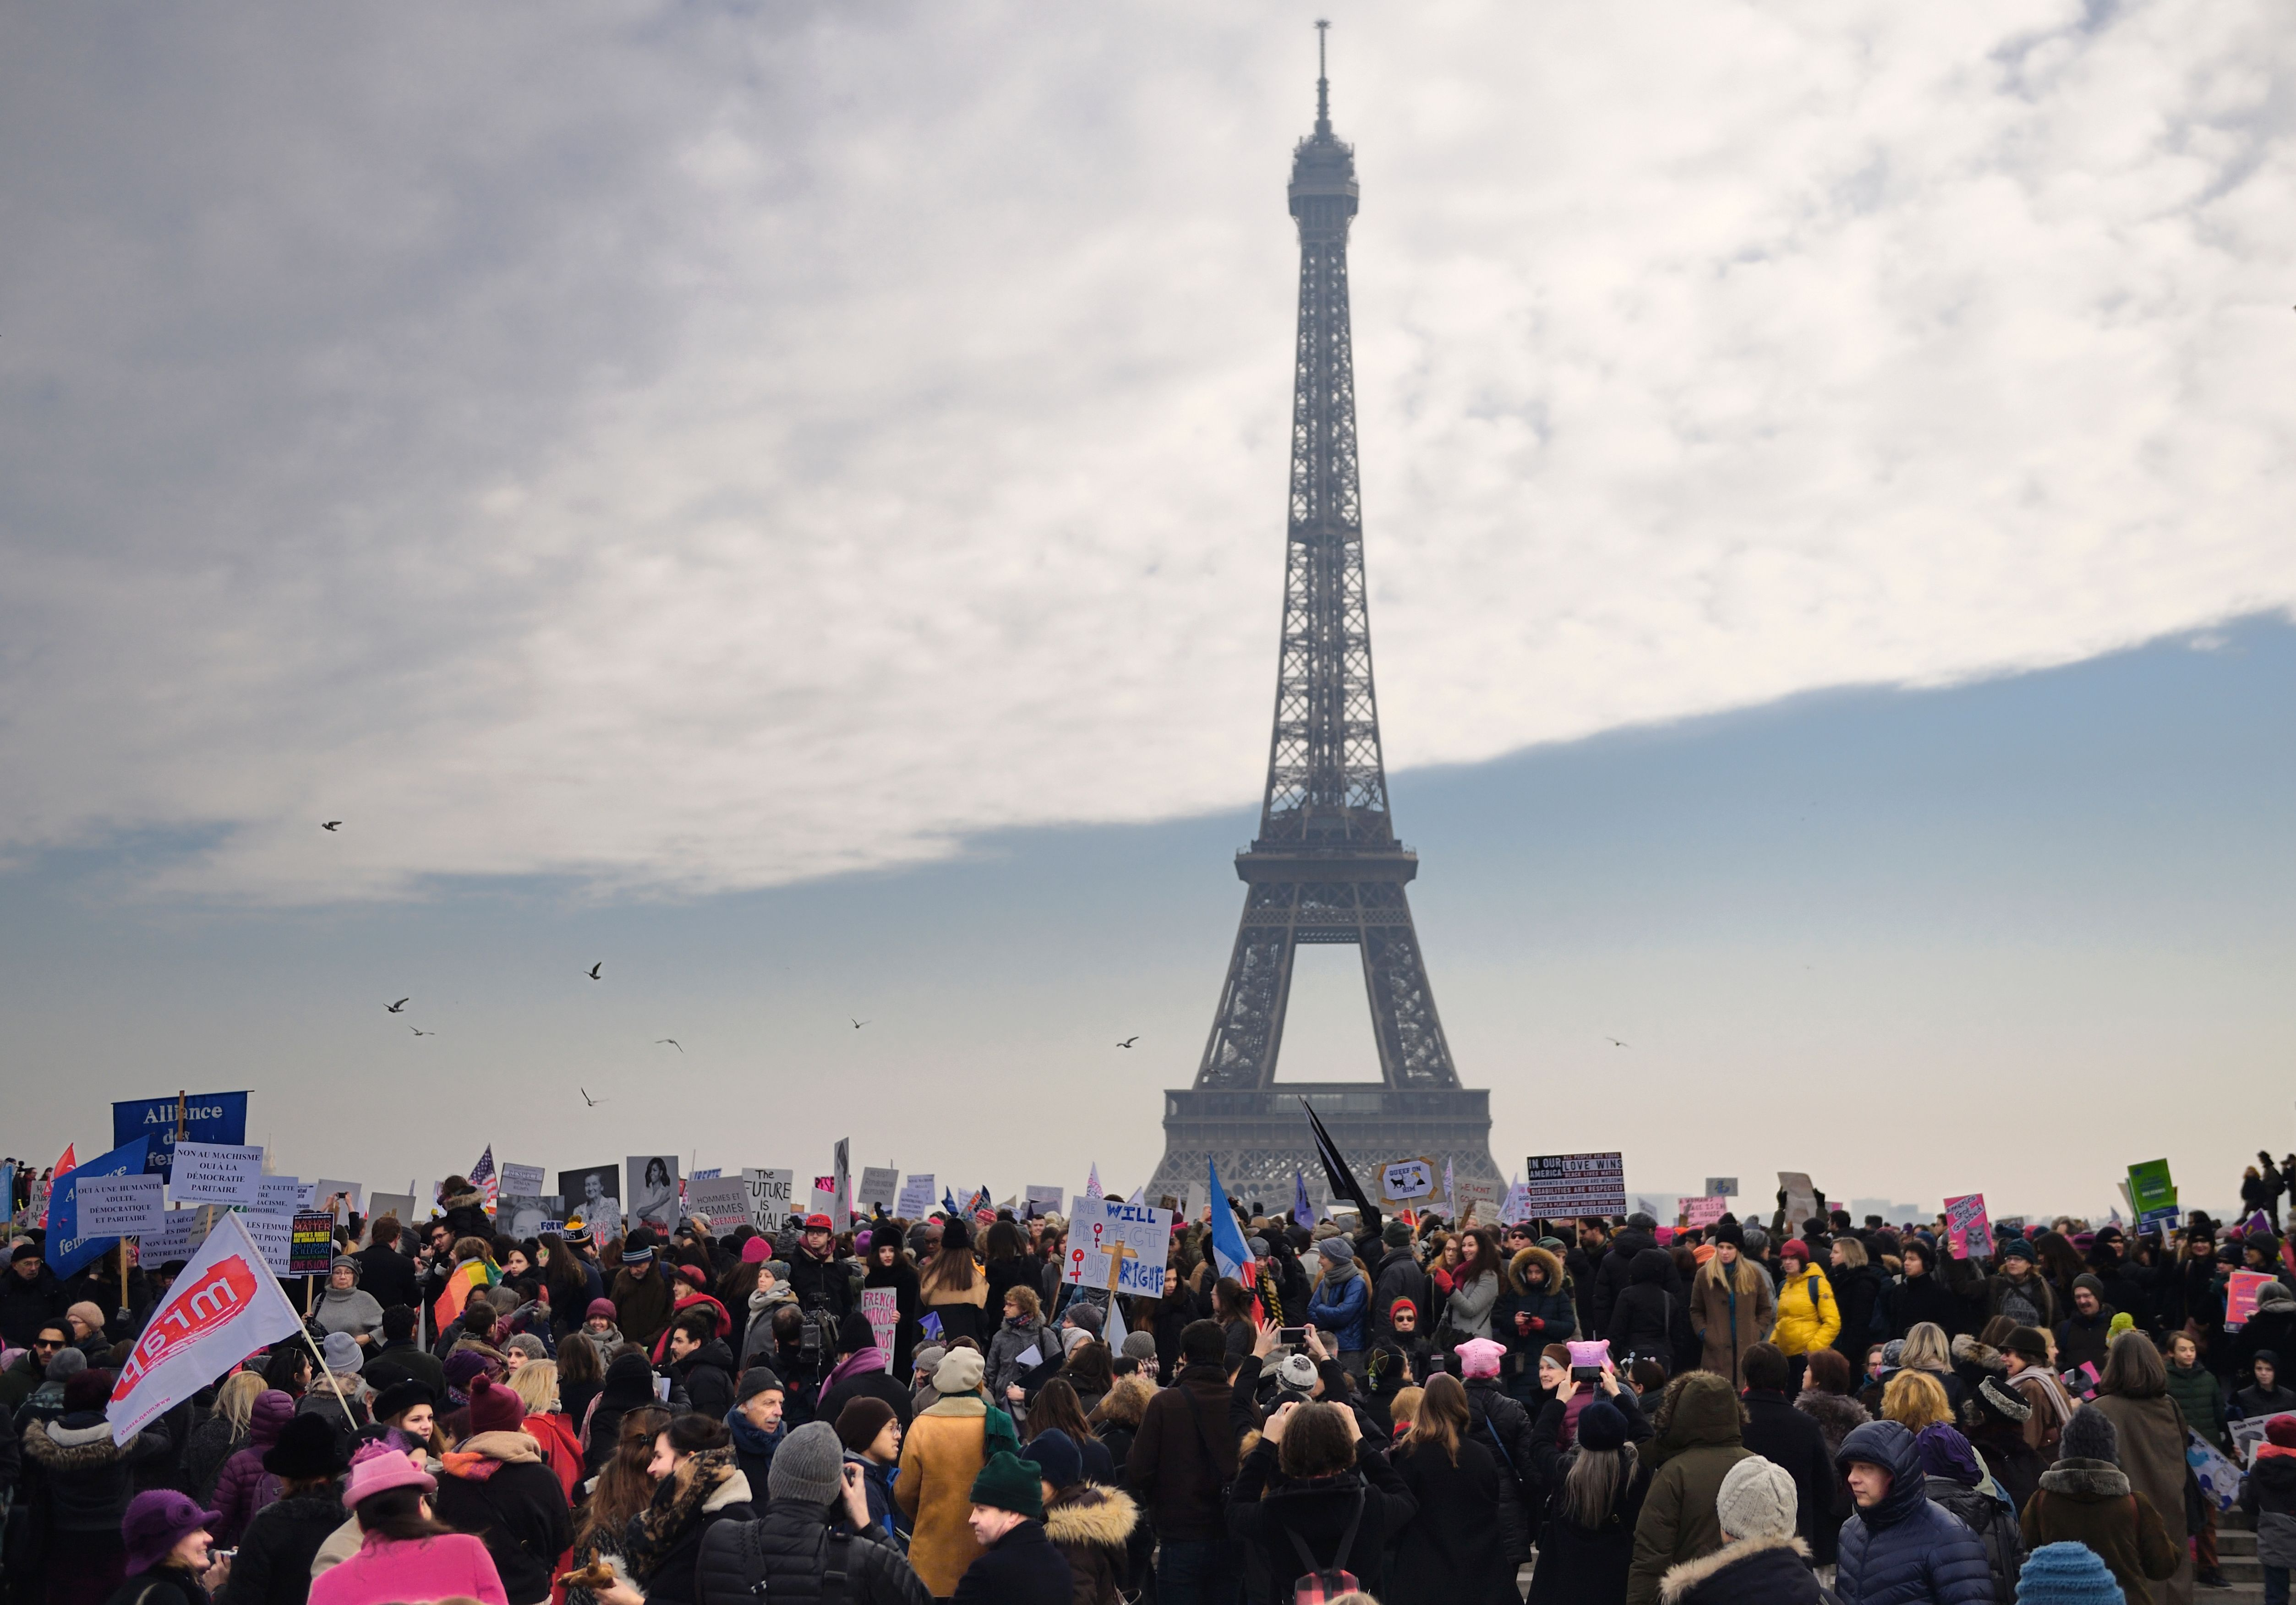 Supporters of the Women's March in Paris, on Jan. 21, 2017.